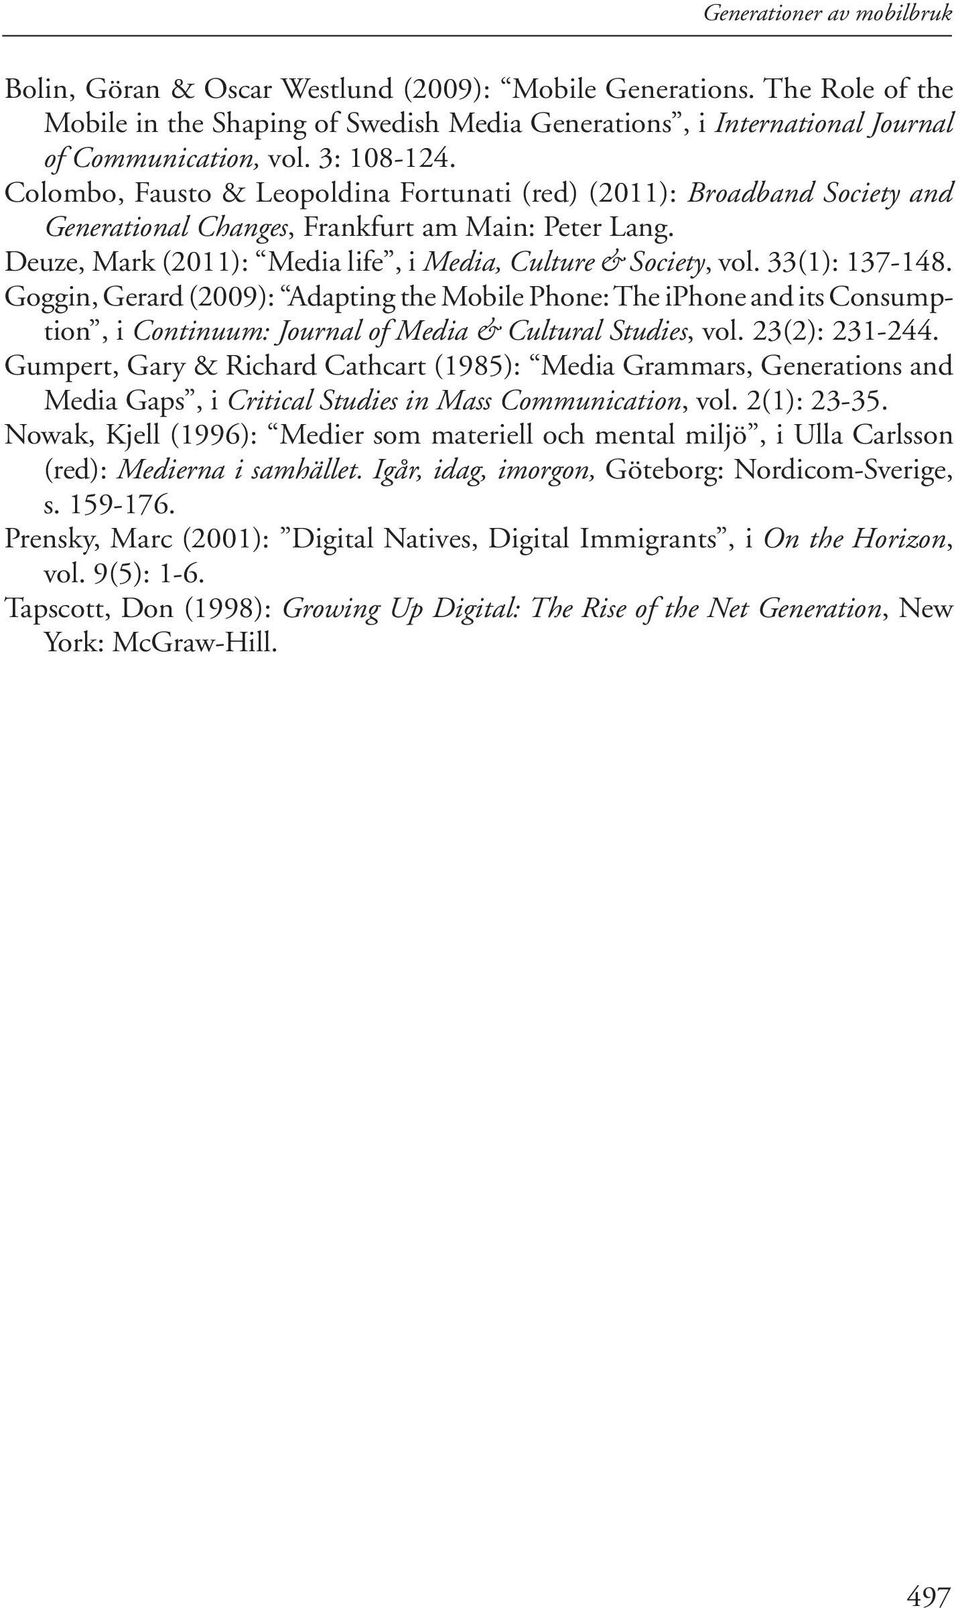 Deuze, Mark (2011): Media life, i Media, Culture & Society, vol. 33(1): 137-148.